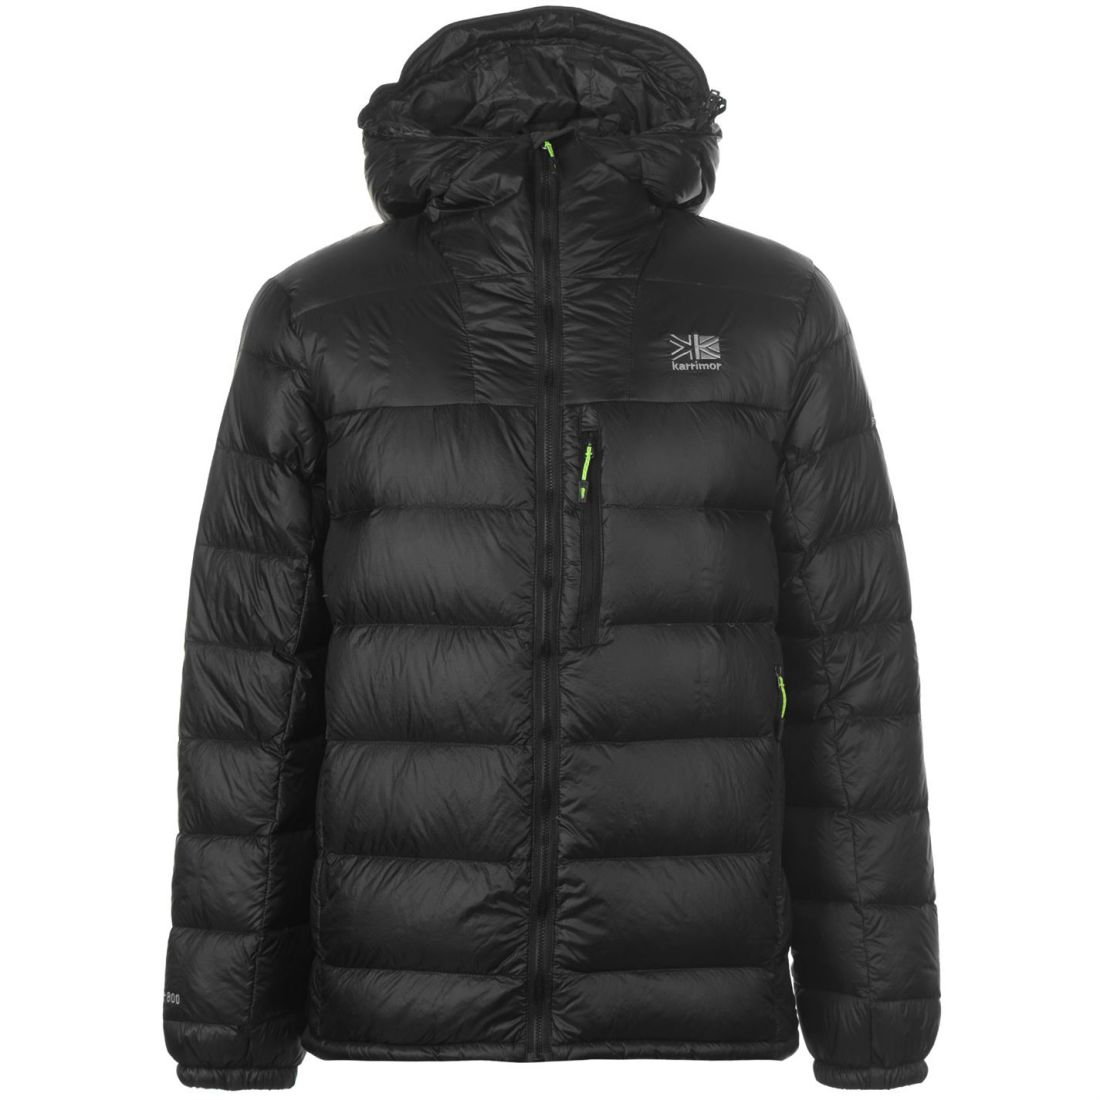 f3d58105b Details about Karrimor Sub Zero Down Jacket Mens Gents Puffer Coat Top Chin  Guard Hooded Zip